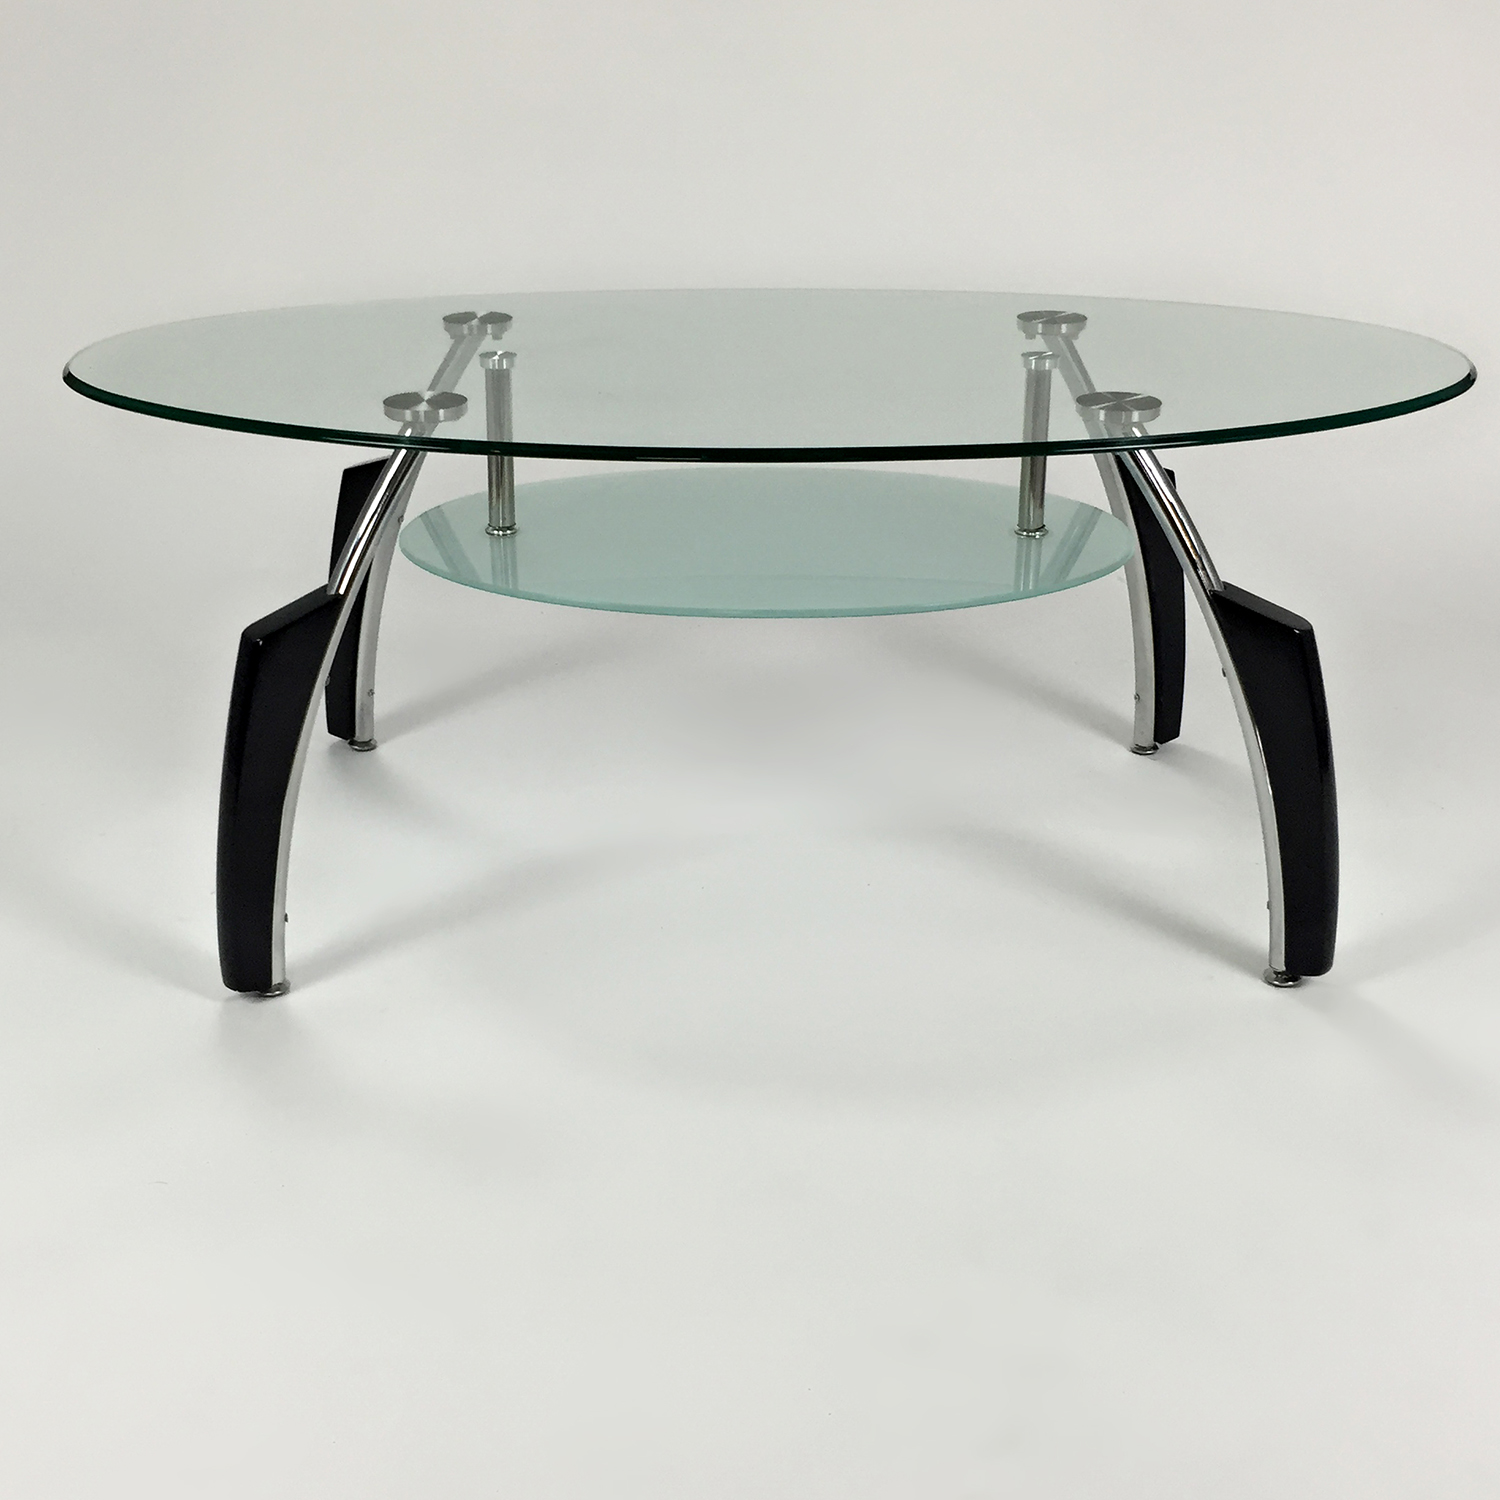 76 off ashley furniture ashley furniture mallacar coffee table tables Designer glass coffee tables